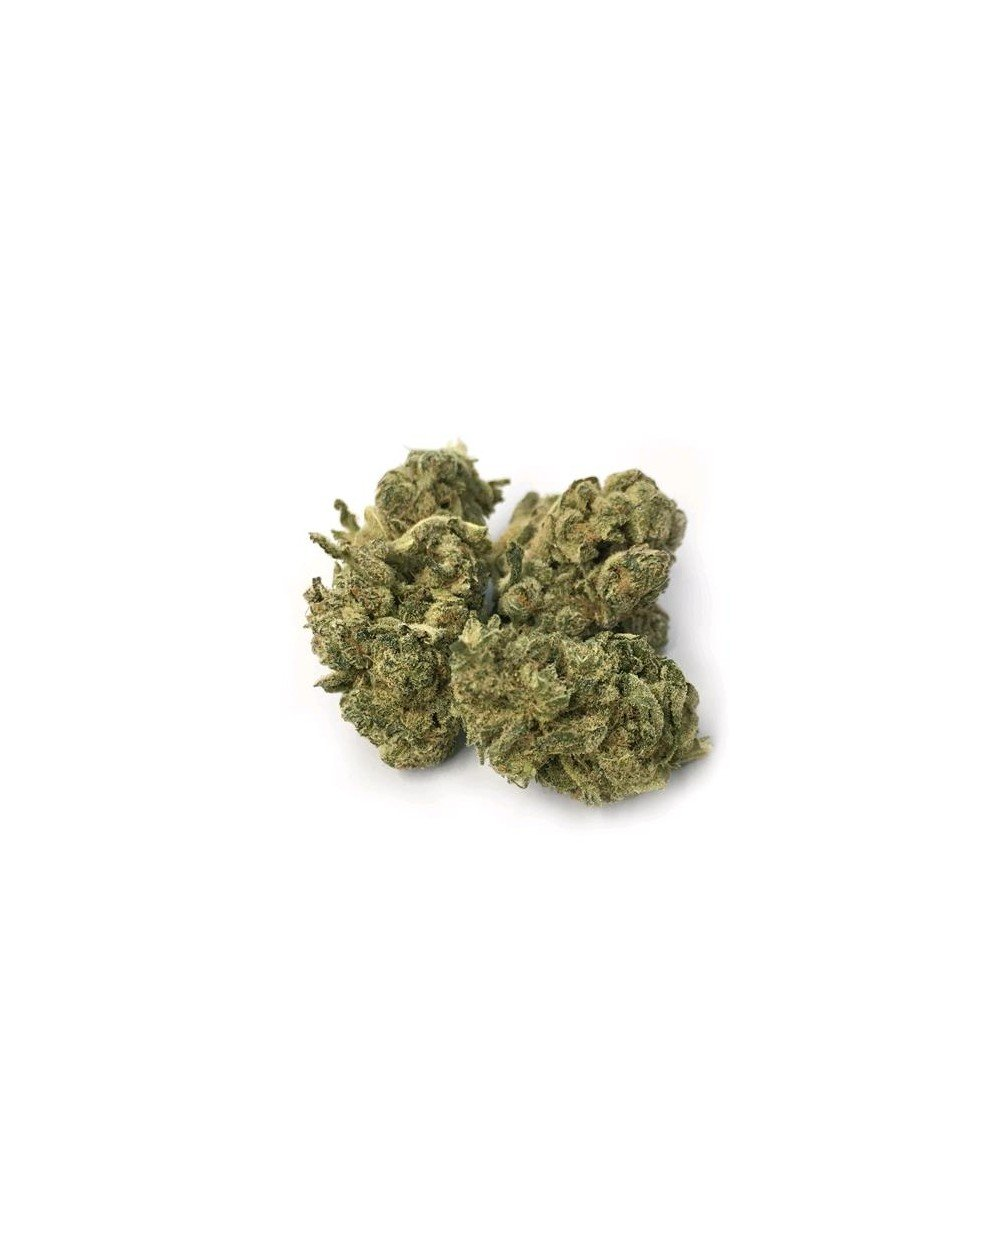 100g Crystal CBD buds -THC 0.2% 100% Legal EU - and Hemp flowers UK